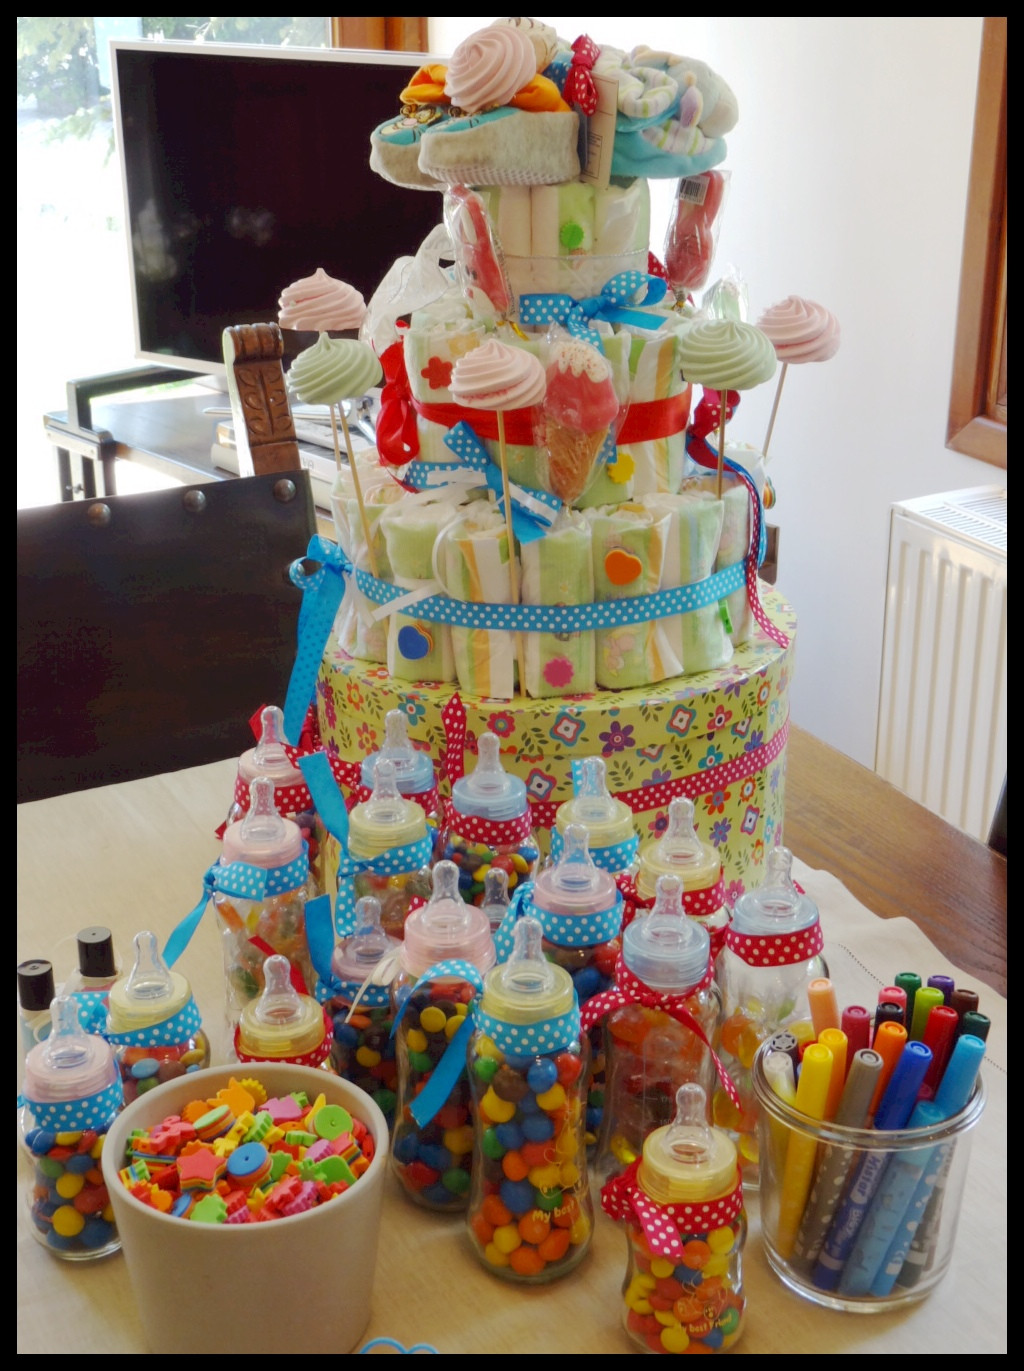 Best ideas about DIY Baby Diaper Cake . Save or Pin Do It Yourself Party Decorations – Diaper Cake – yoggi s way Now.